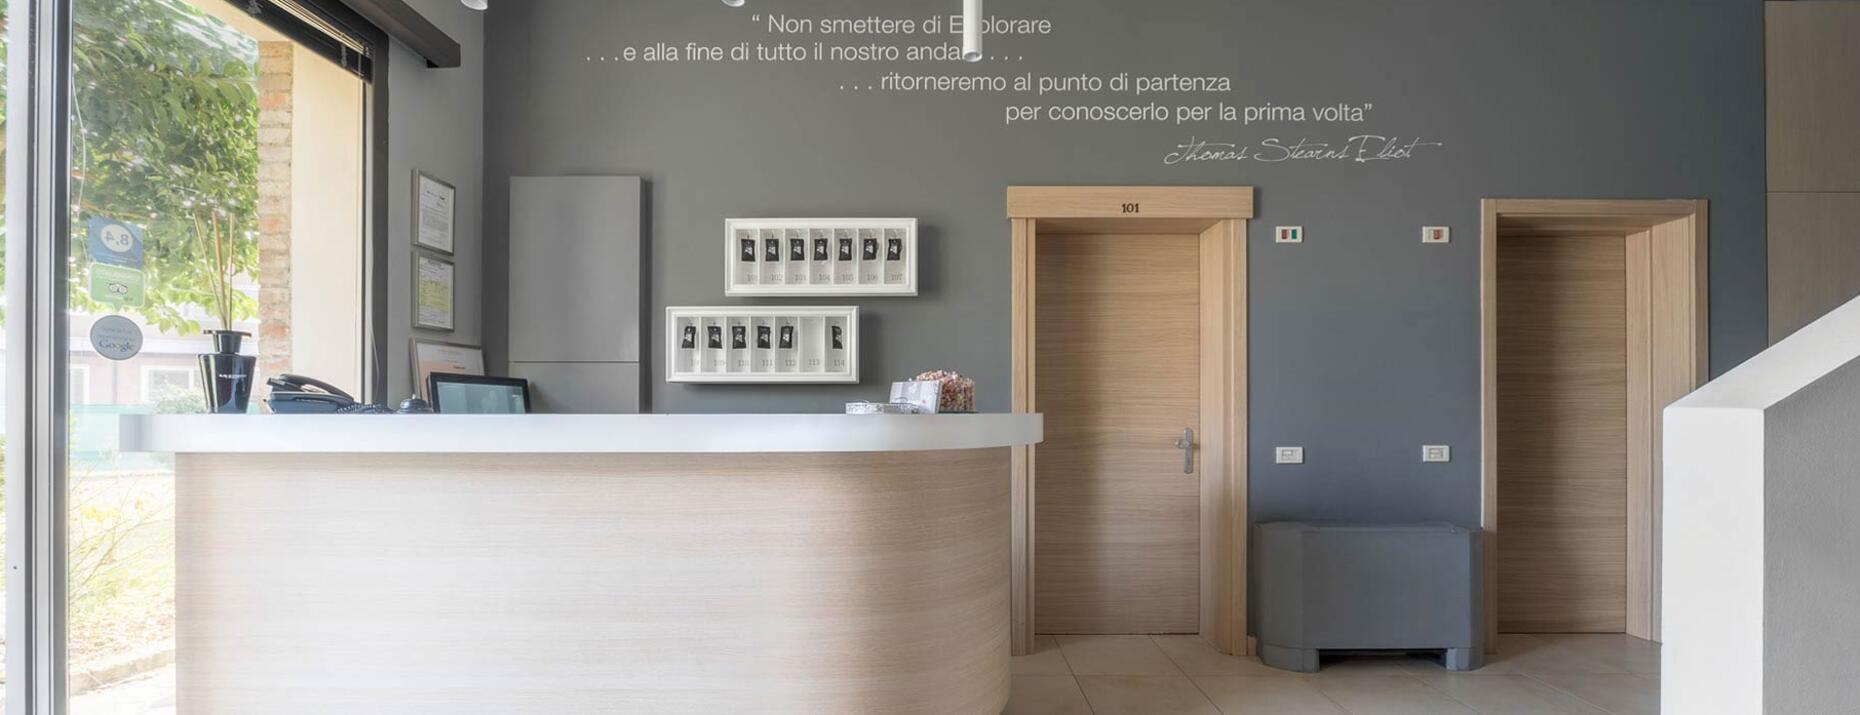 hotelcastellodargile it gallery 006